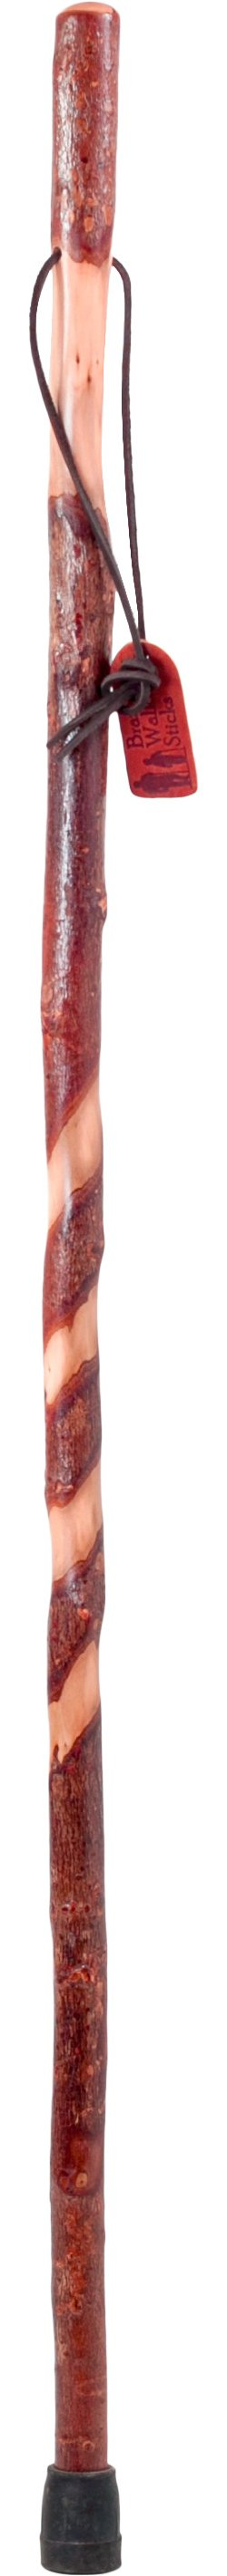 "Brazos® American Hardwoods 55"" Walking Stick"